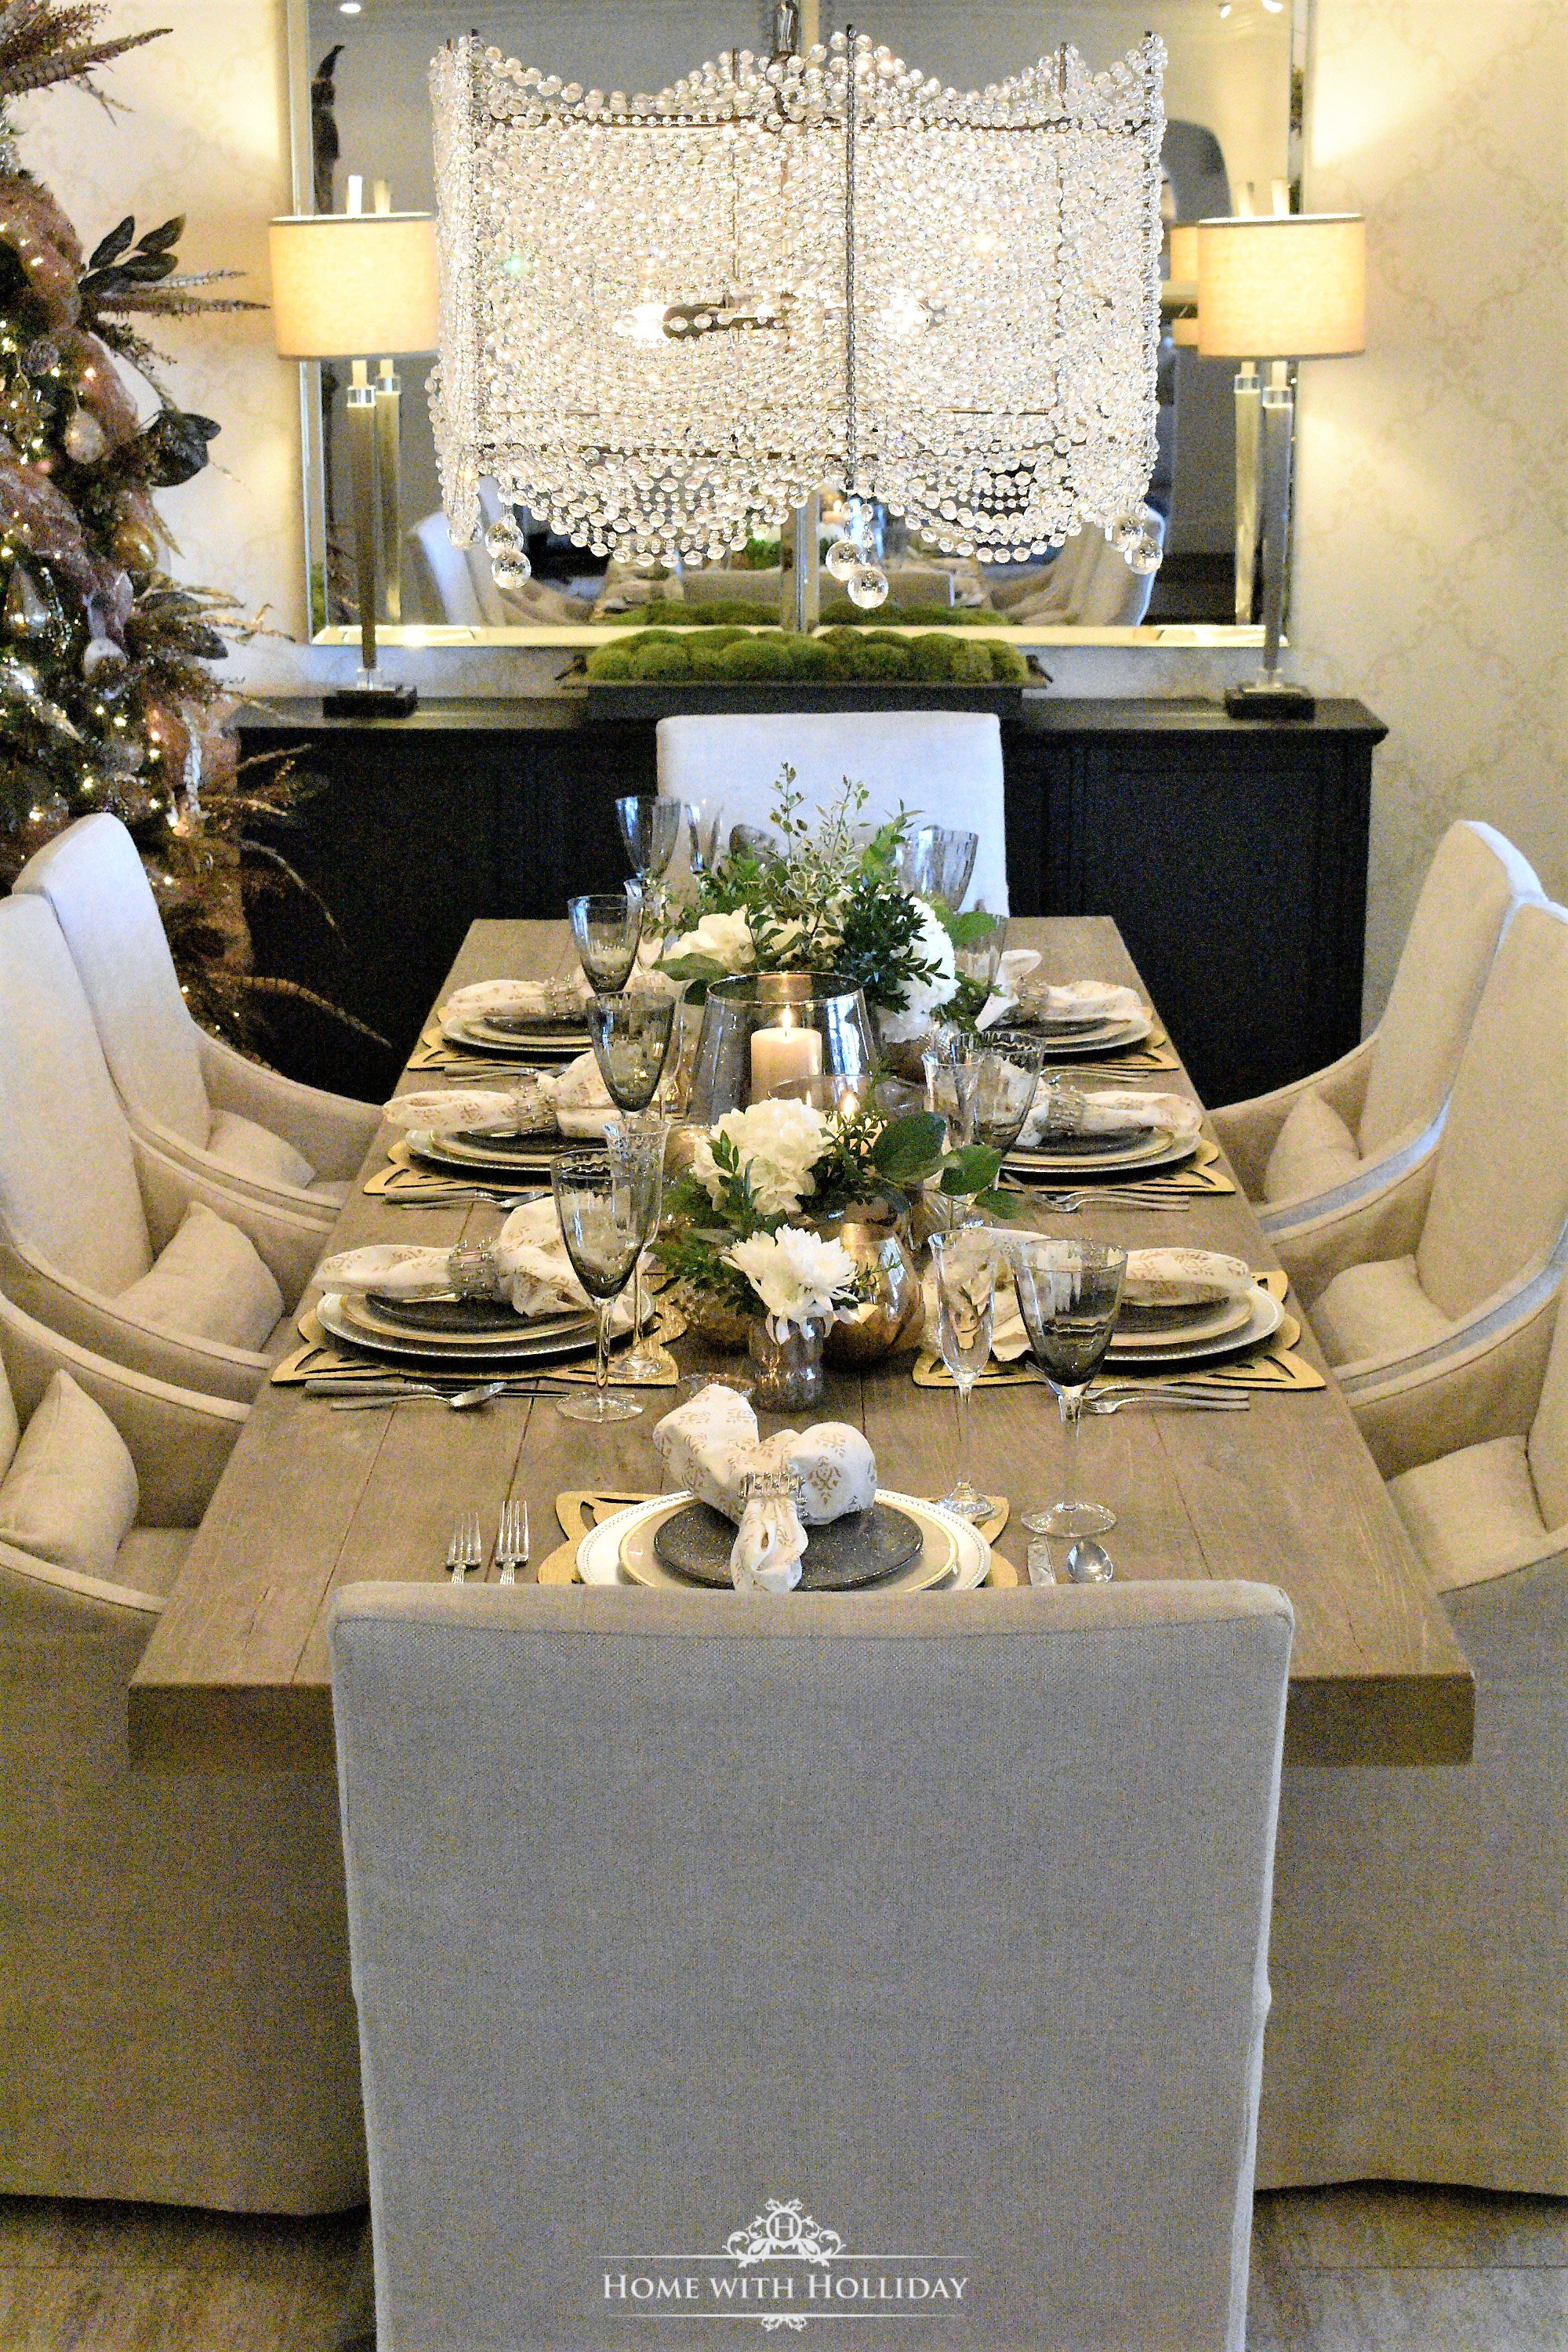 Gold and Silver Table Setting for New Year's Eve or Christmas - Home with Holliday